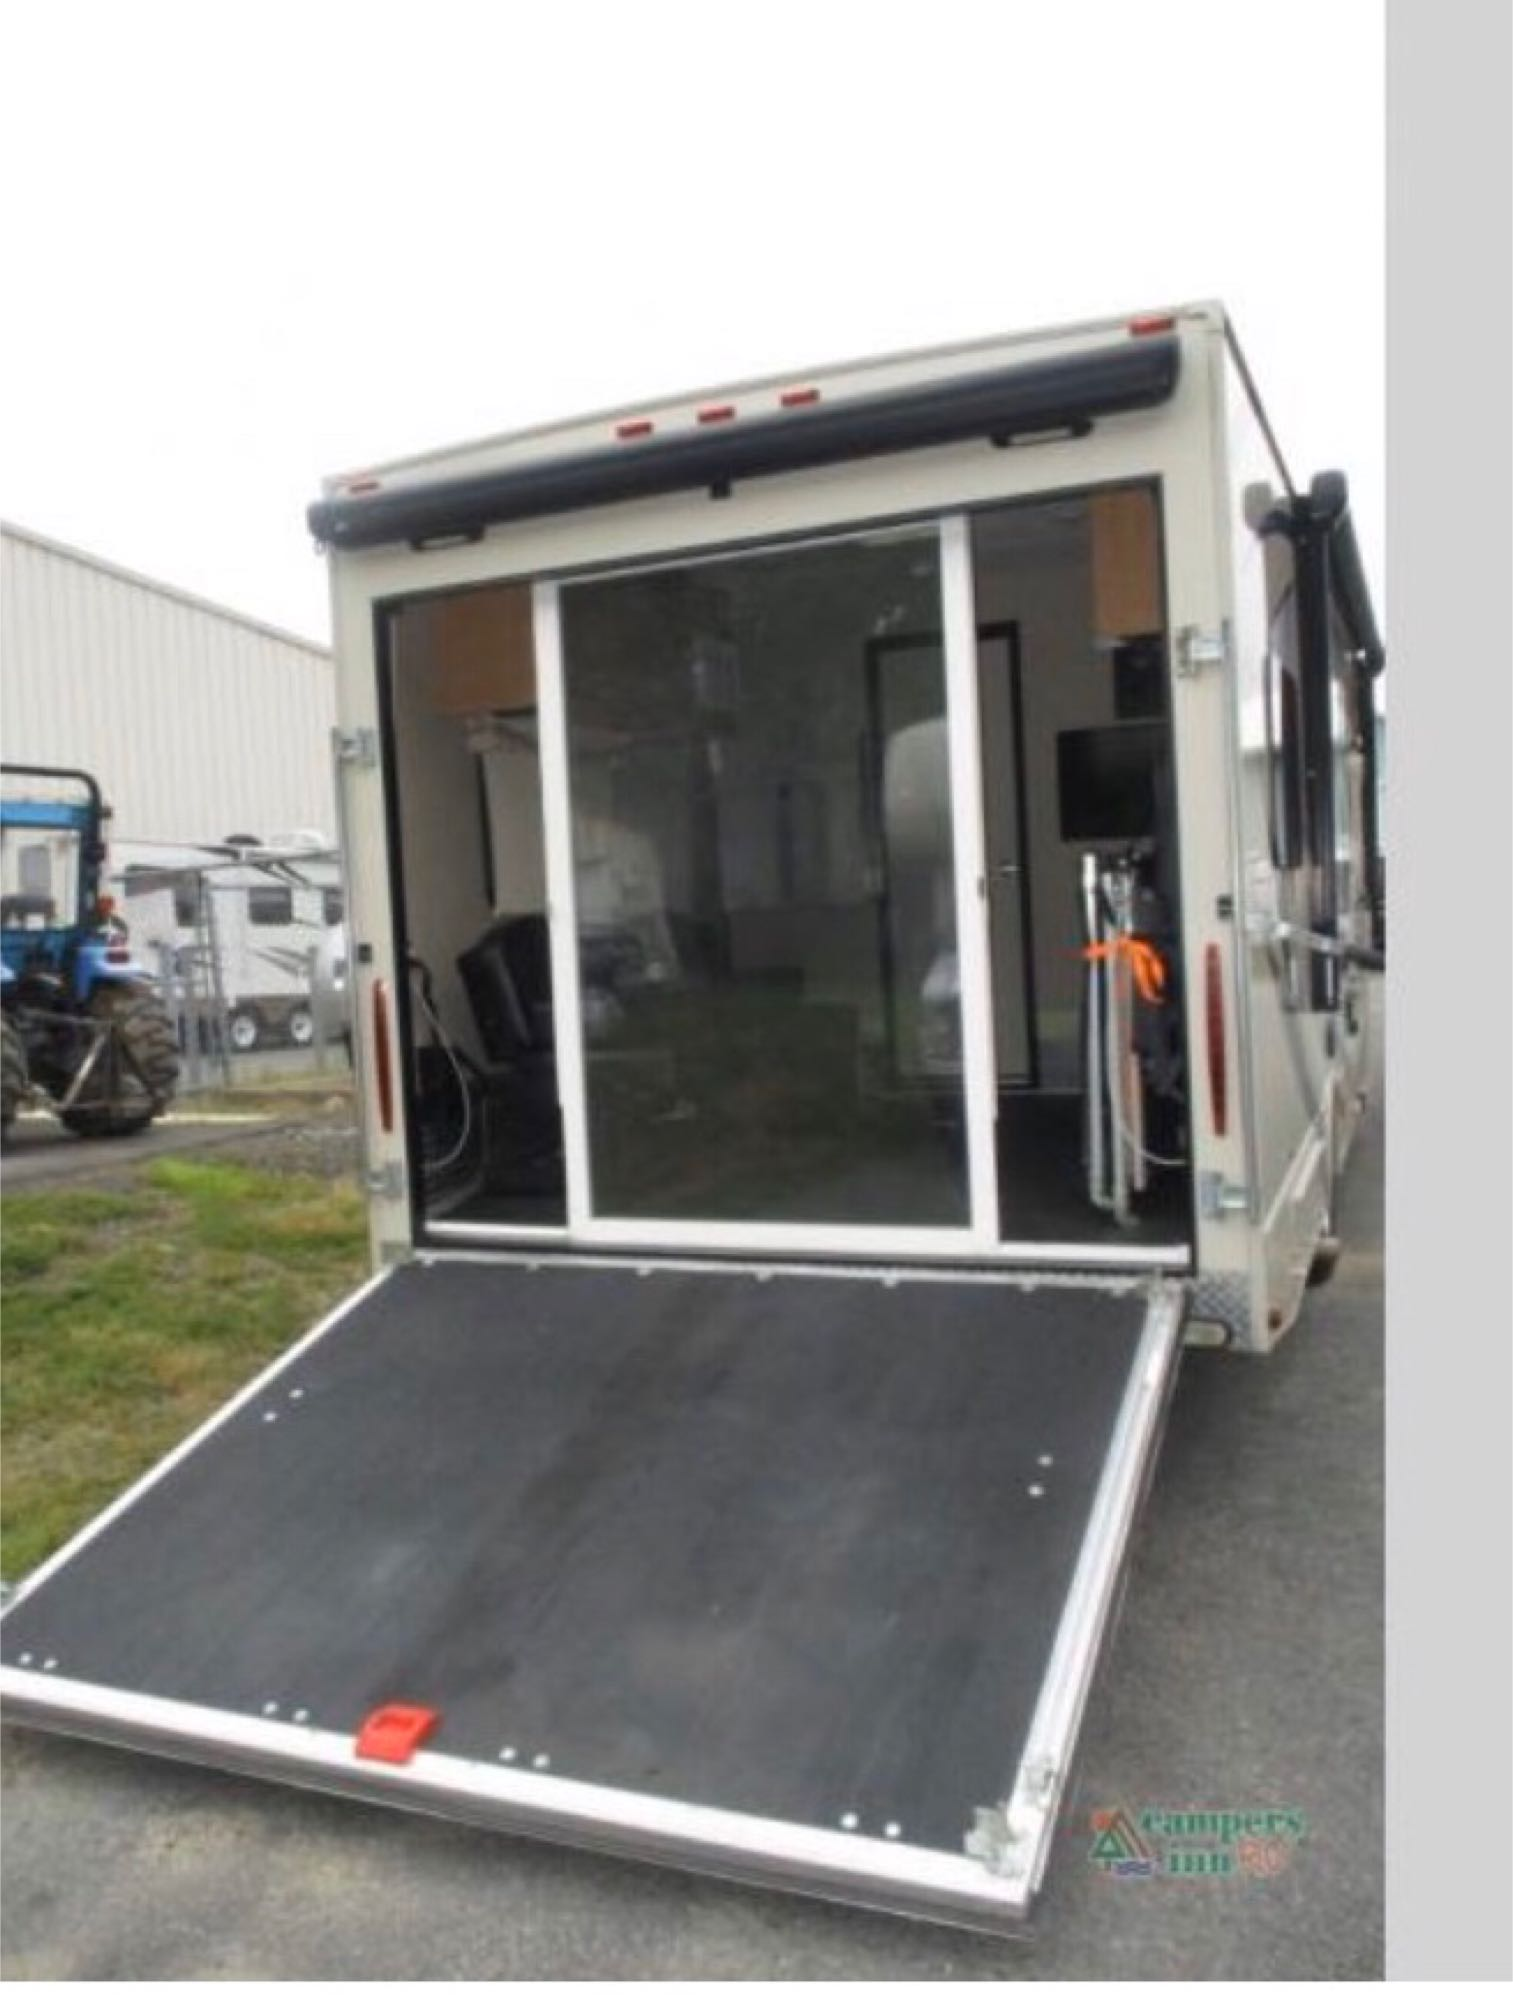 ramp into the toy hauler area, this ramp easily converts to a deck. The exterior light, awning and sliding lexan doors make it an extra space for the adults to hang out and not disturb the sleeping kids . Thor Motor Coach Outlaw toy hauler 2017